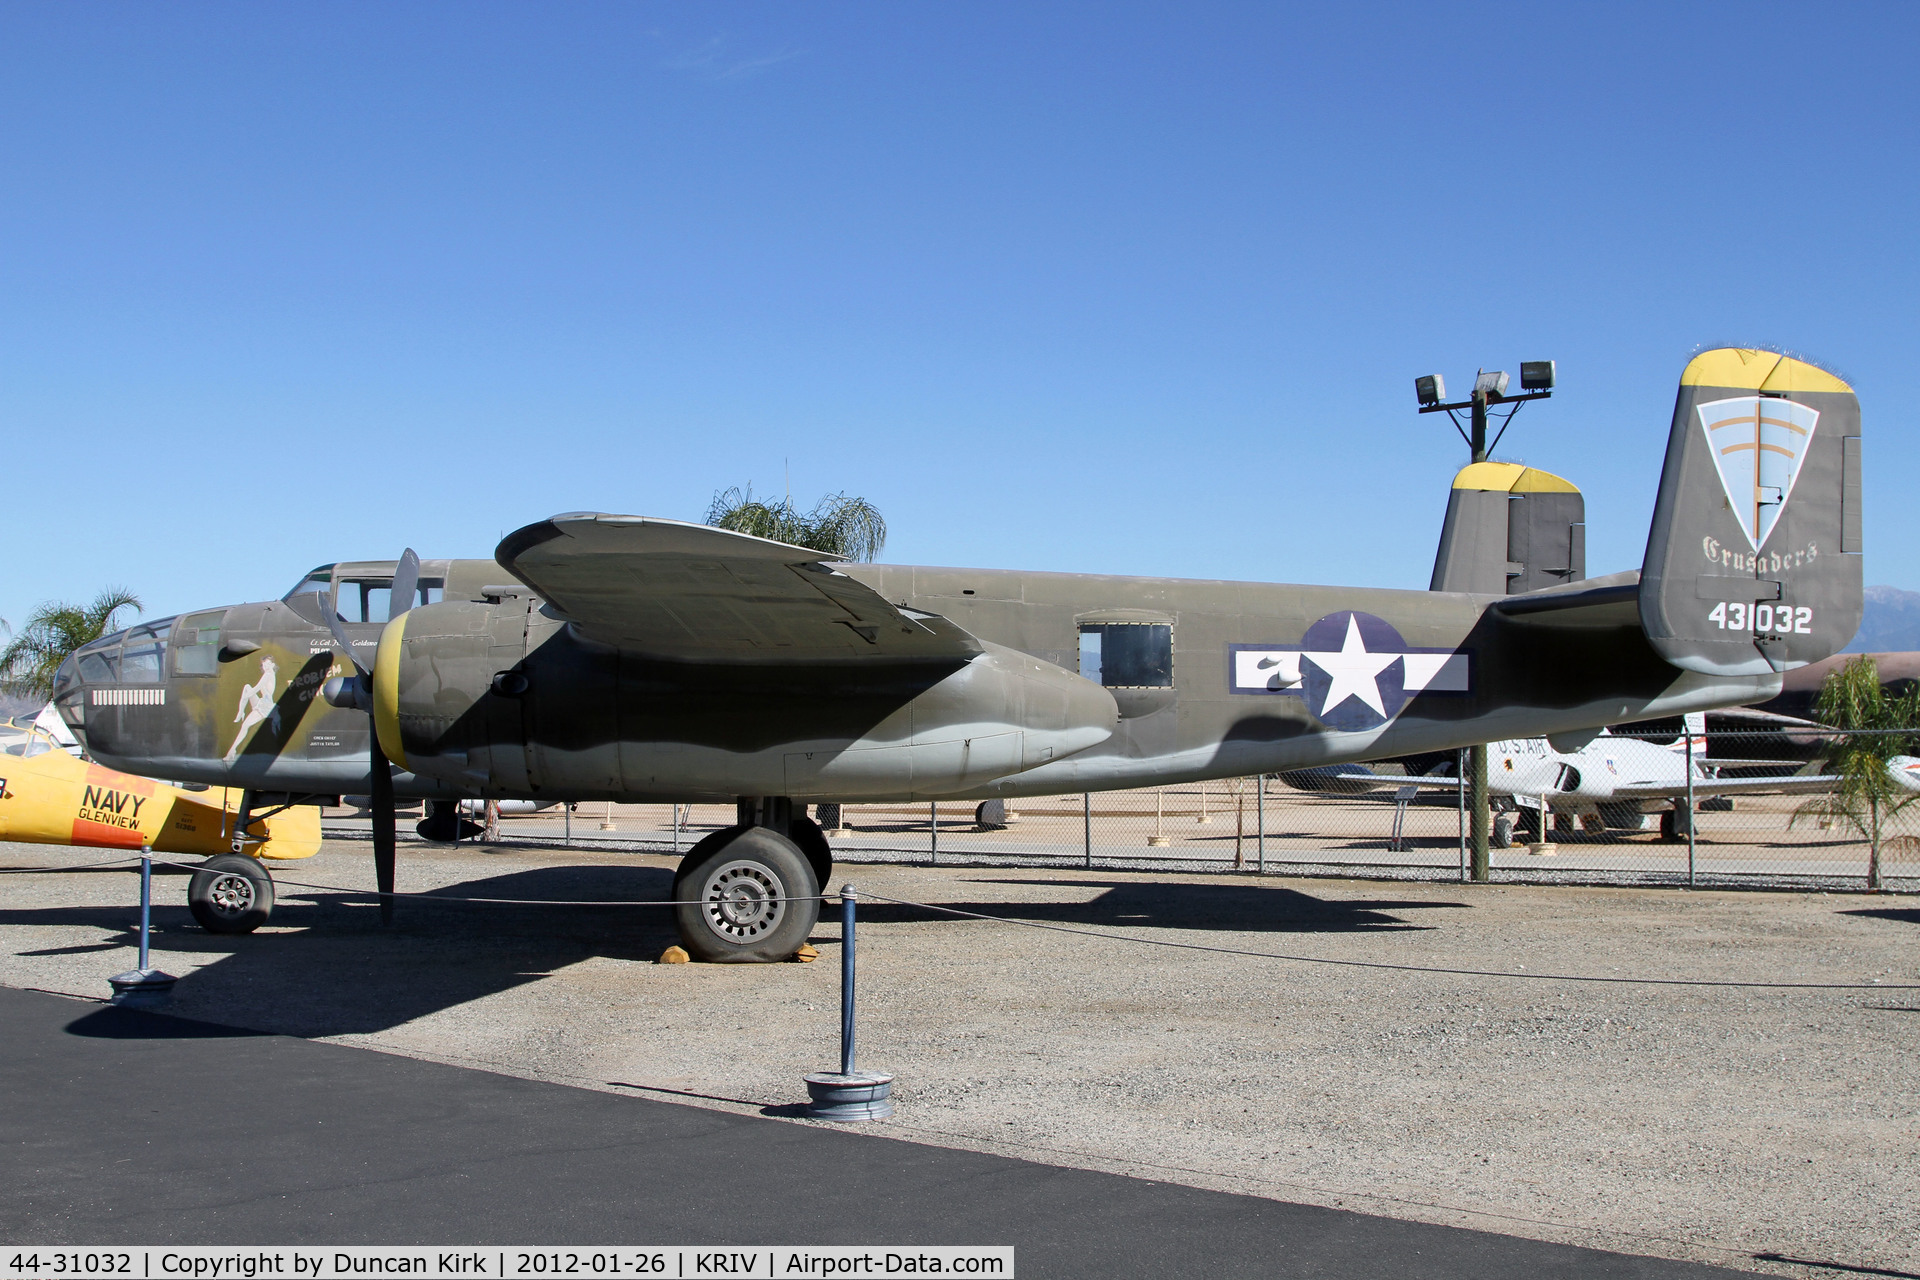 44-31032, 1944 North American B-25J Mitchell C/N 108-35357, The museum is well worth the visit